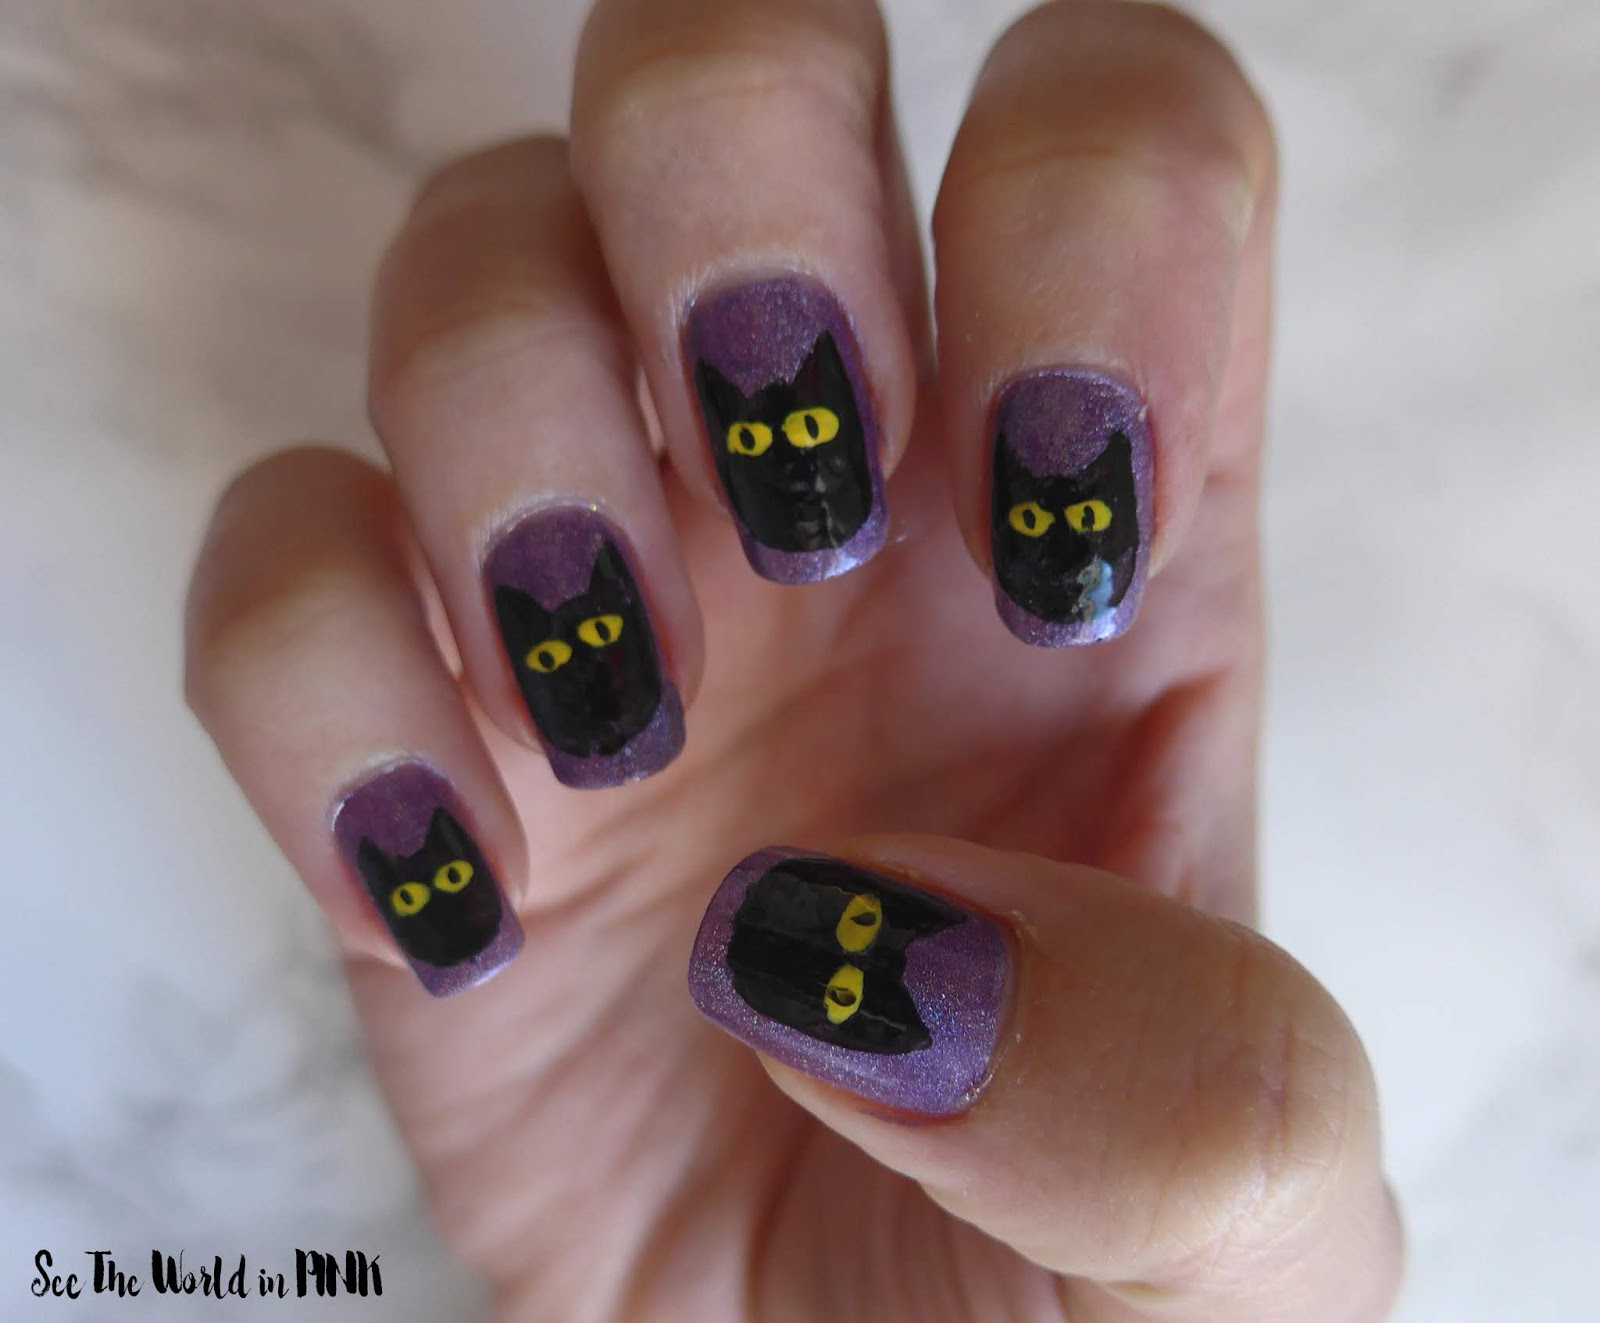 Manicure Monday - Black Cat Nail Art!